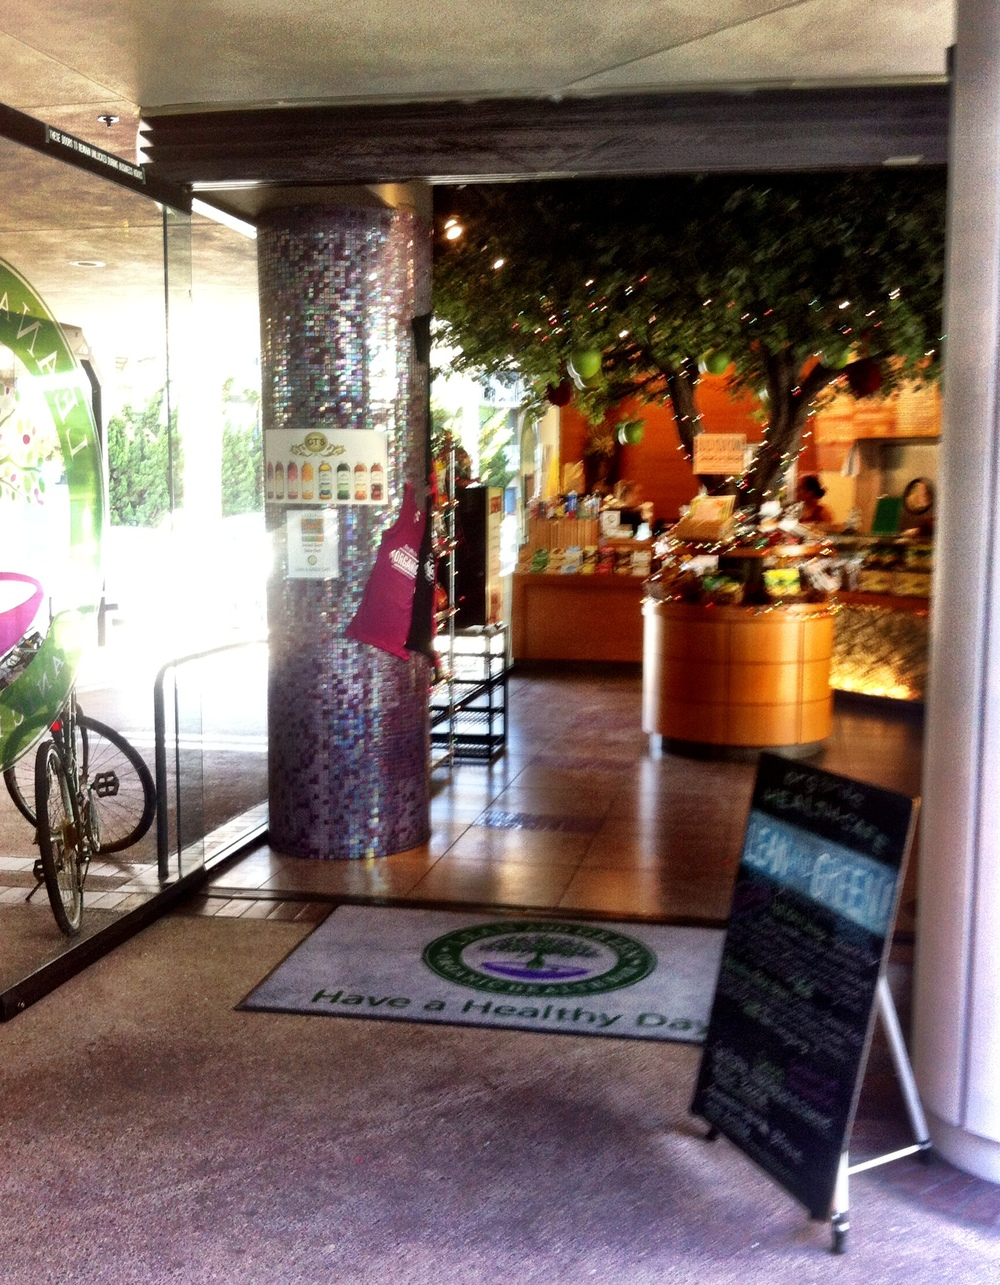 Lean and Green Cafe |   7825 Fay Ave, La Jolla, CA 92037